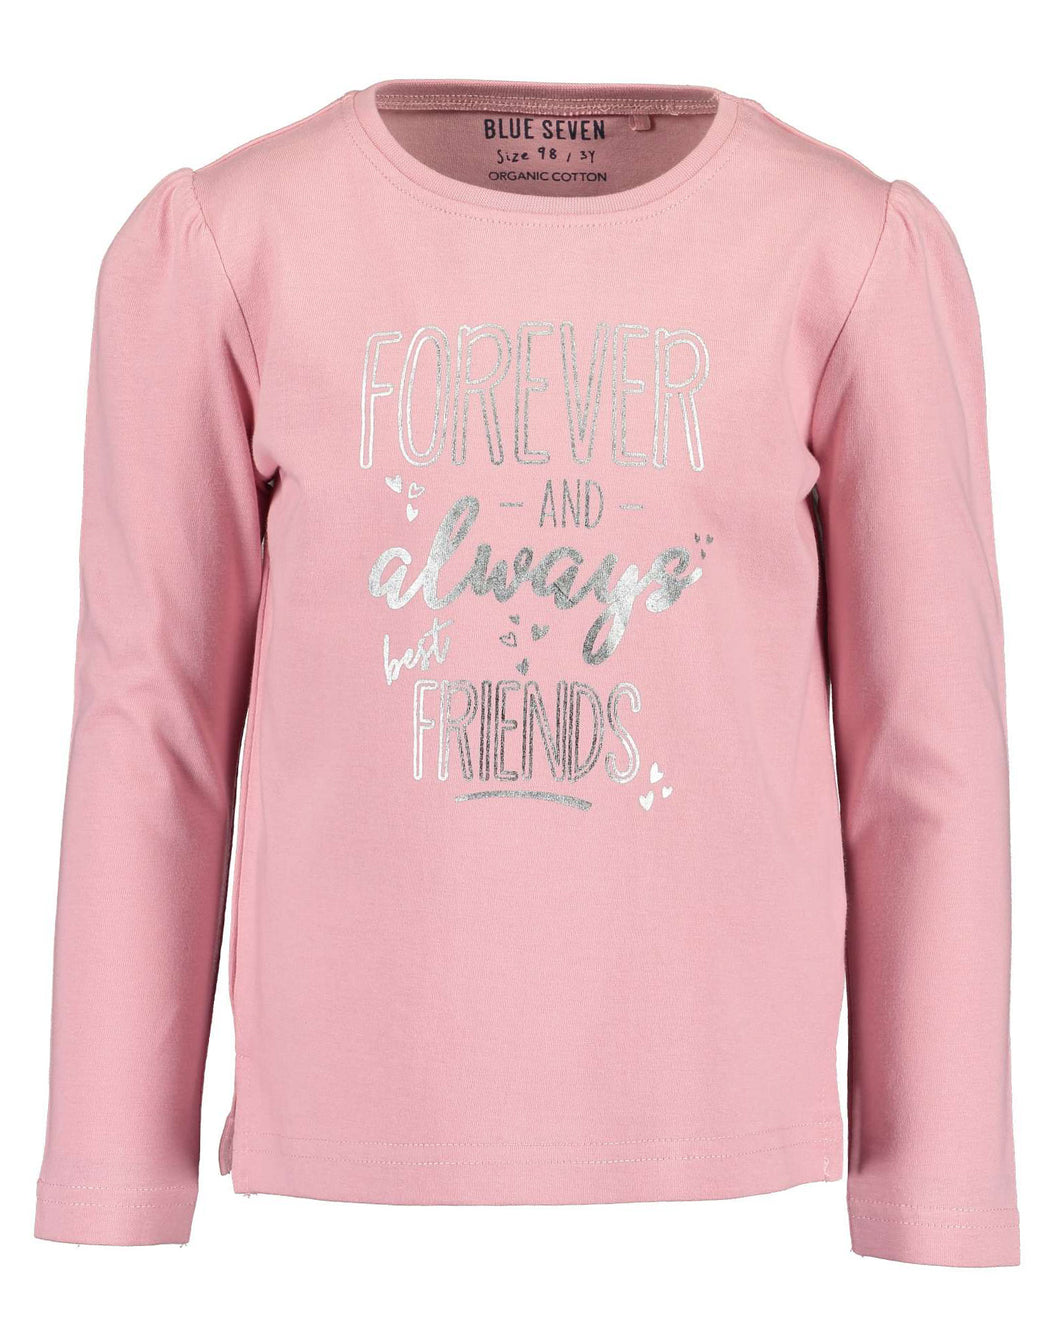 Blue Seven girls forever and always friends pink t shirt